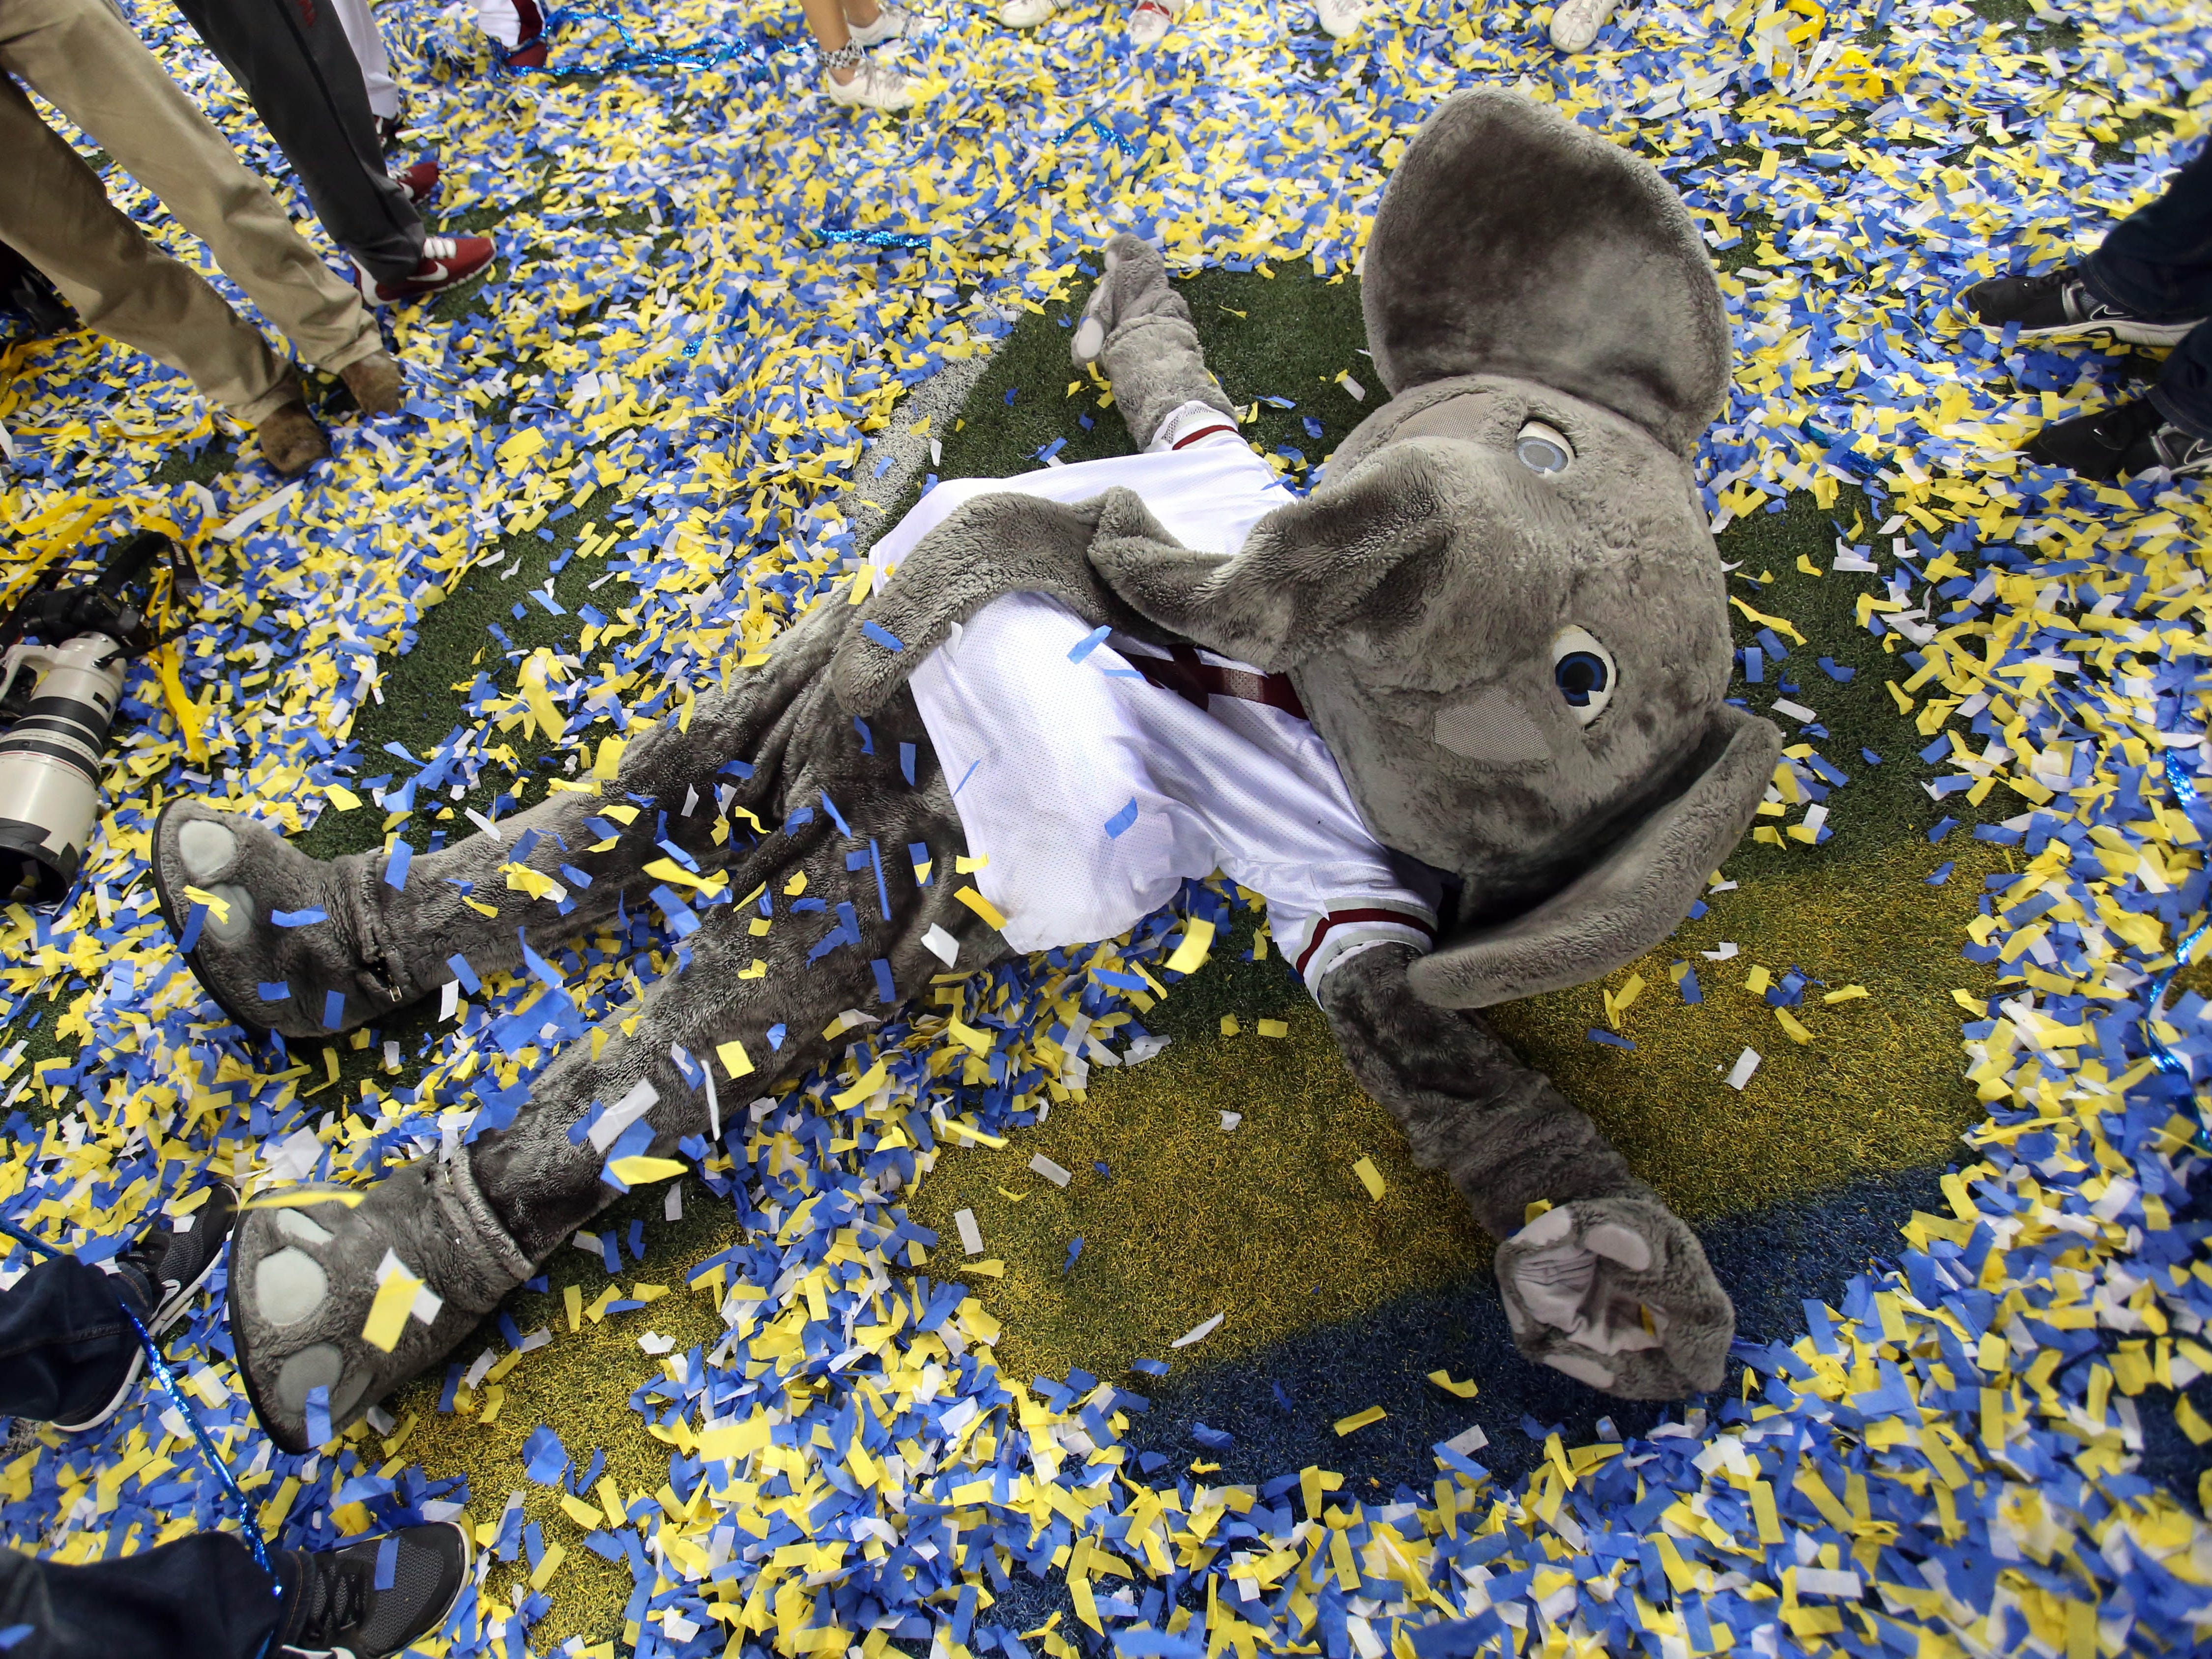 Will Alabama Crimson Tide mascot Big Al celebrate in confetti after the 2015 SEC championship game like he did after the 2014 victory?